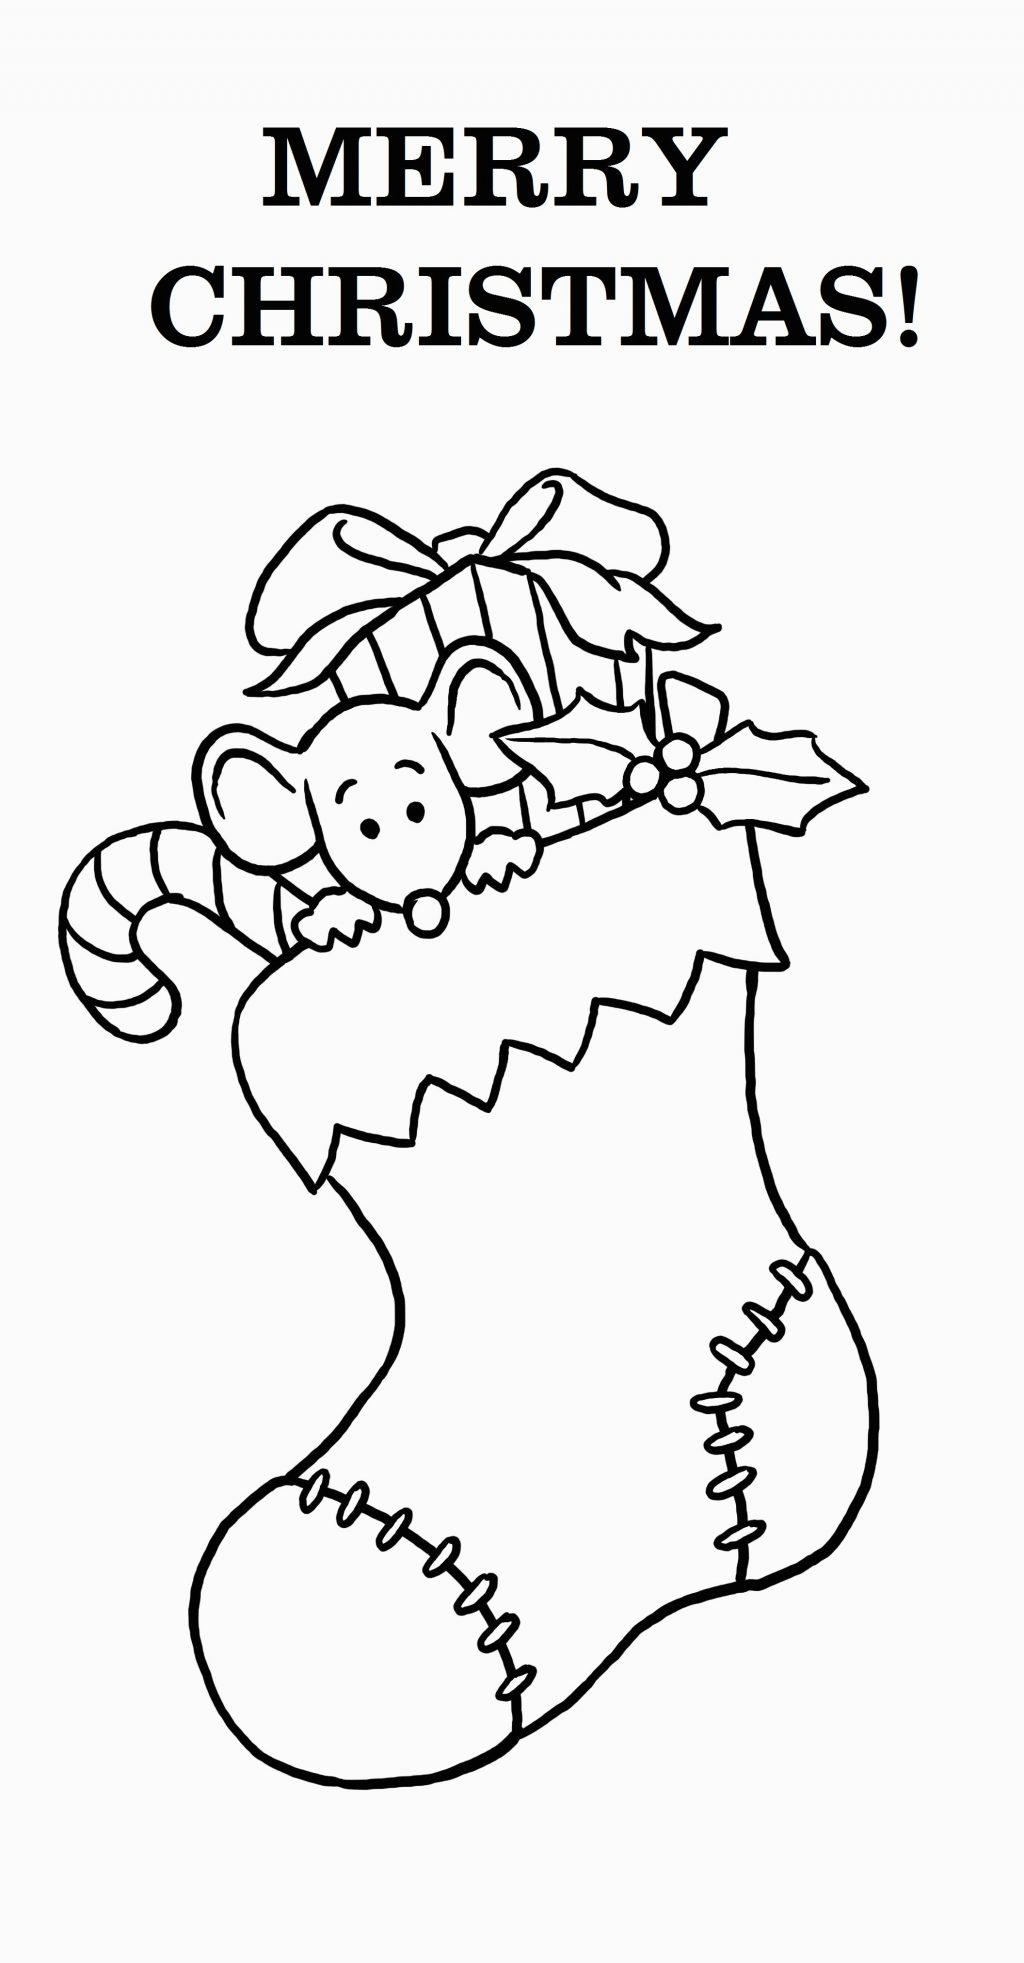 Christmas Color Pages For Kids Coloring Pages Printable Merry Christmas Coloring Pages For Wynn